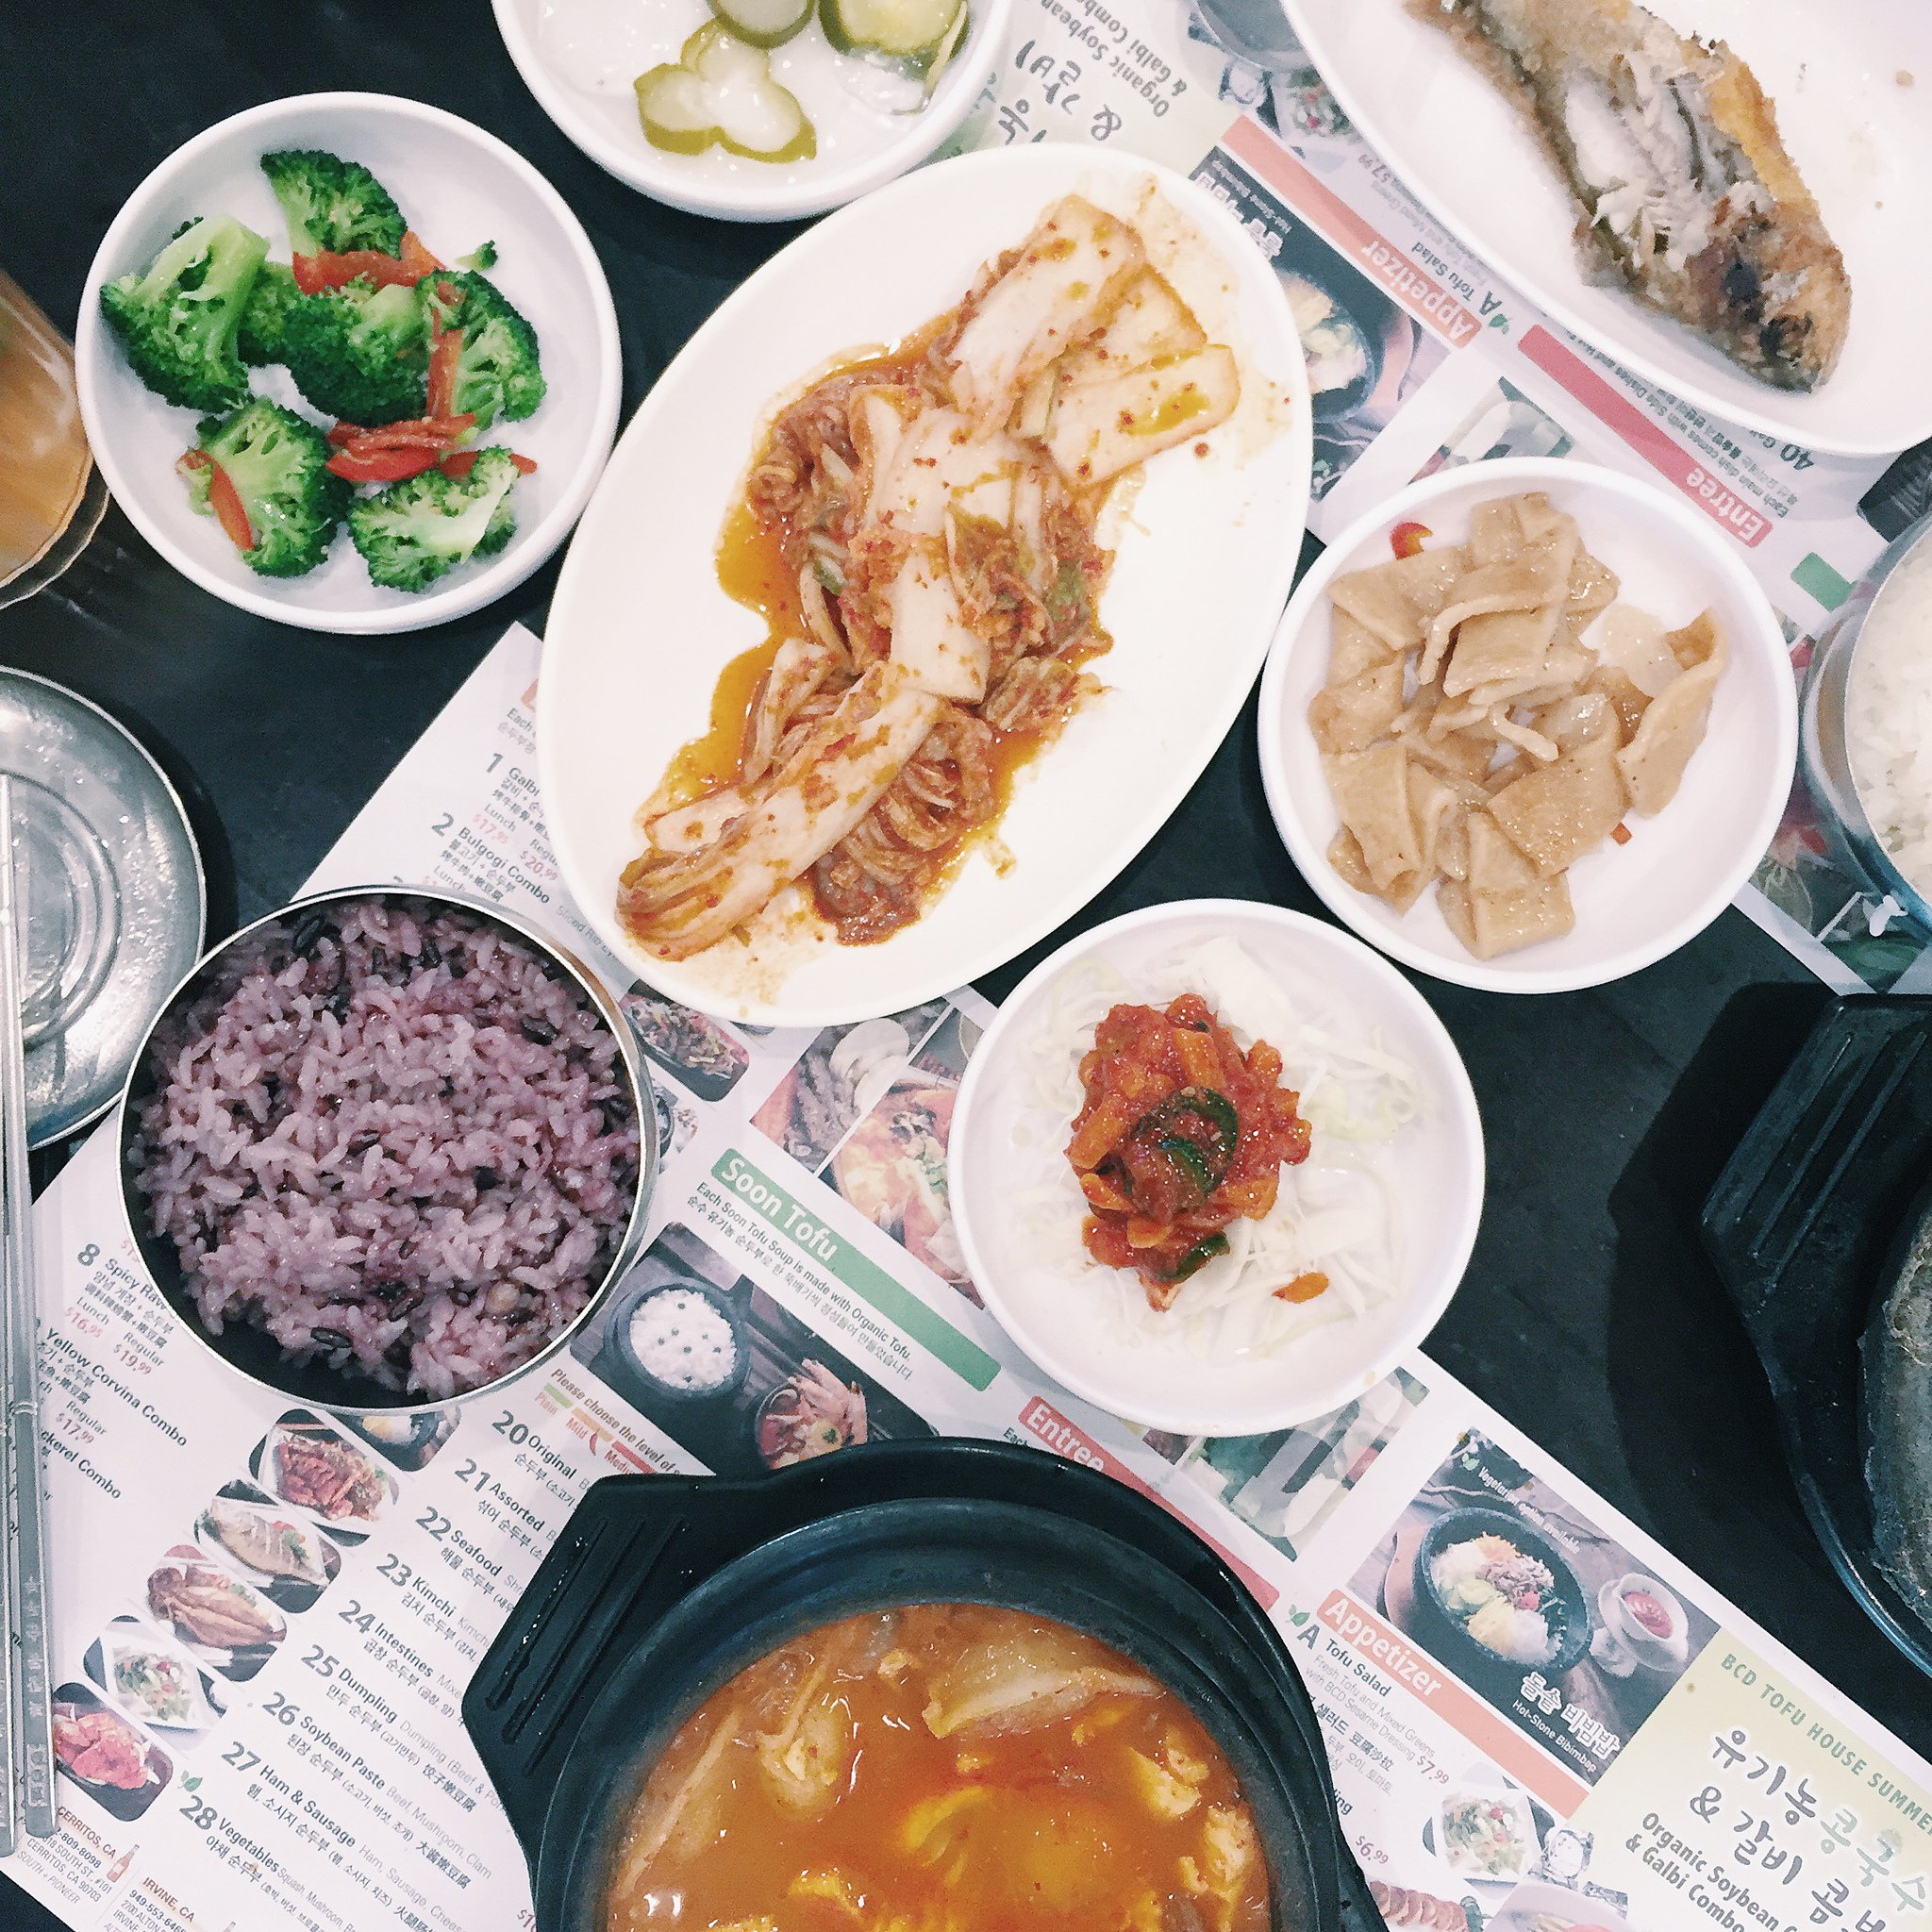 bcd-tofu-house-korean-food-foodie-flatlay